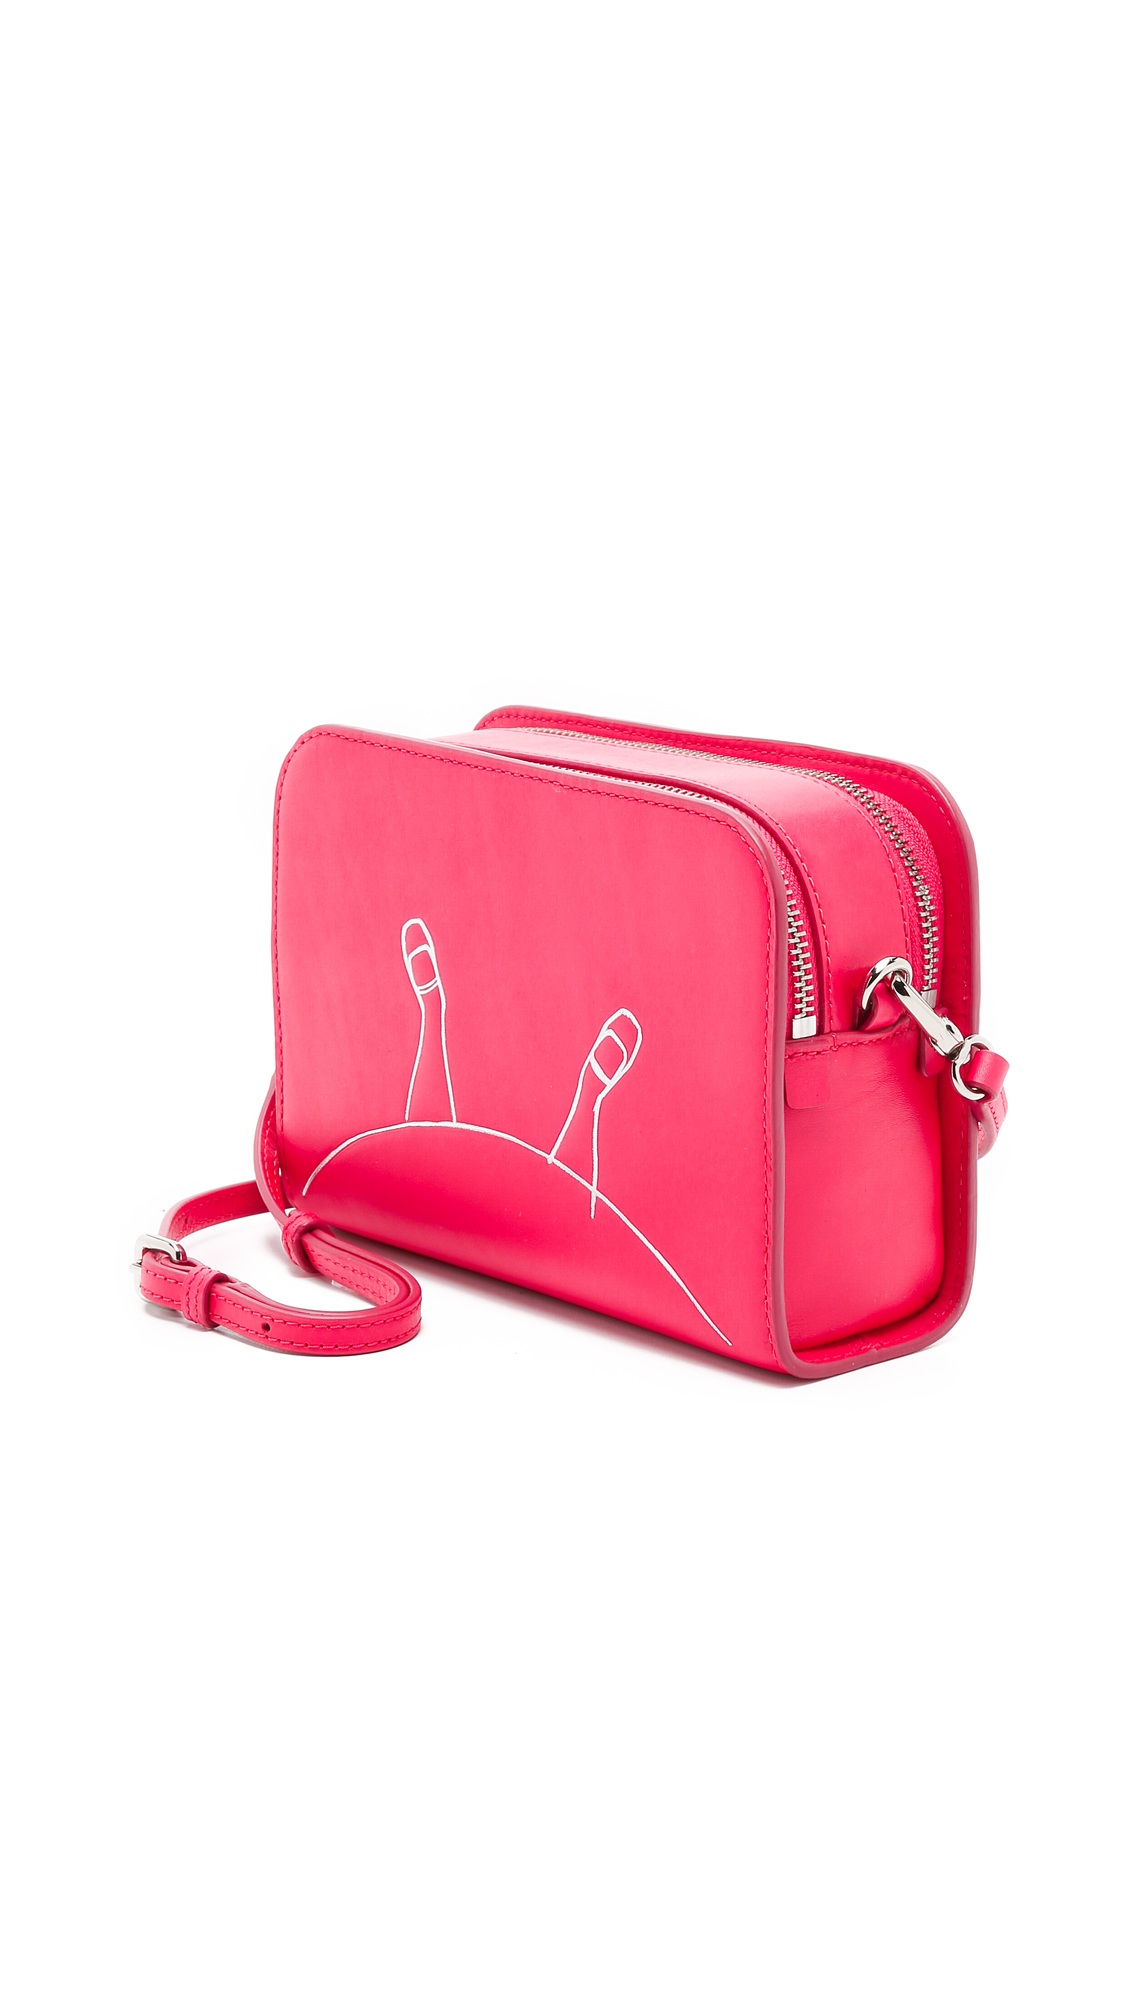 Marc By Marc Jacobs Alice Double Cross Body Bag - Singing Rose Multi in Pink